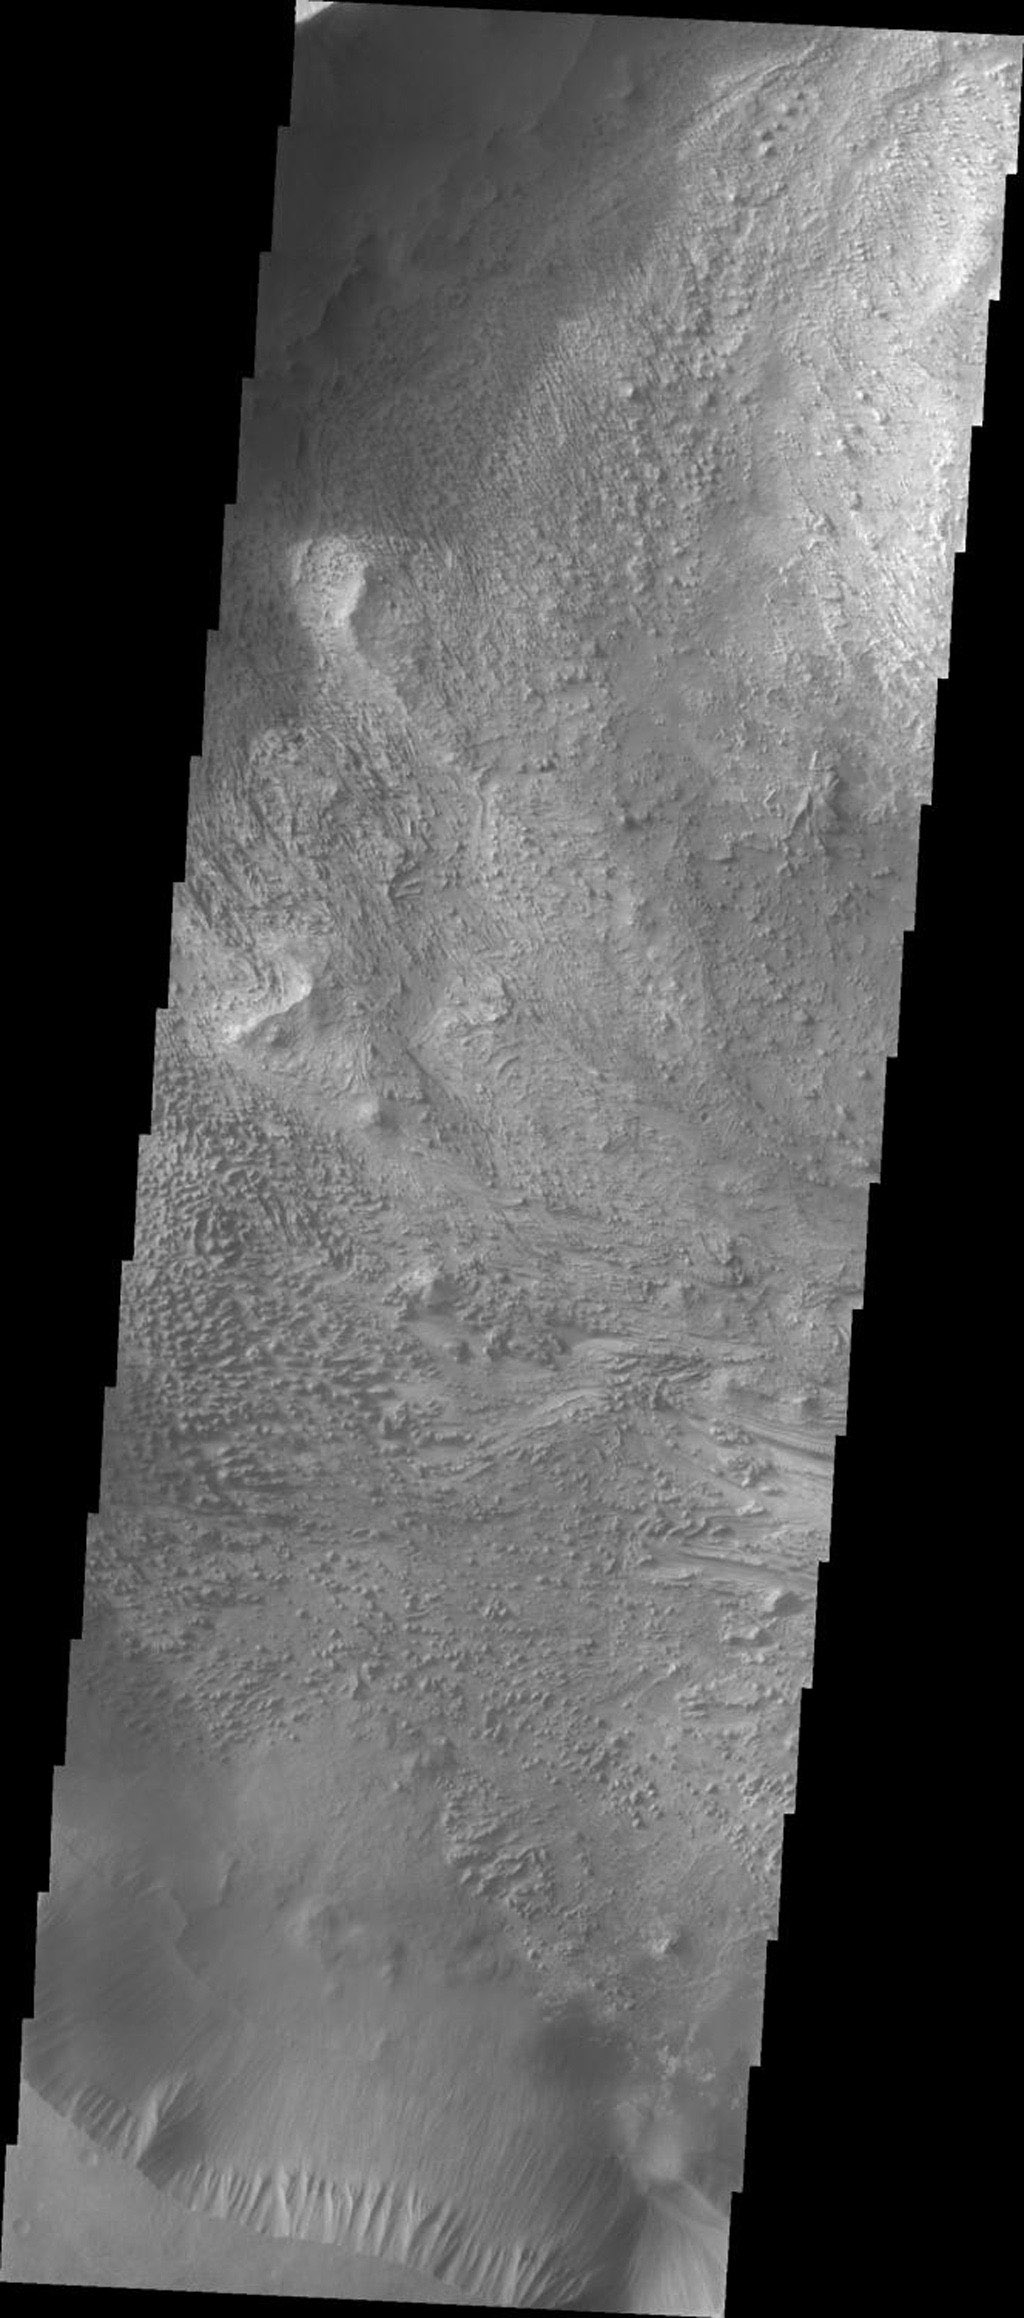 This image released on Sept 29, 2004 from NASA's 2001 Mars Odyssey shows a wind etched area on Mars in Candor Chasma.